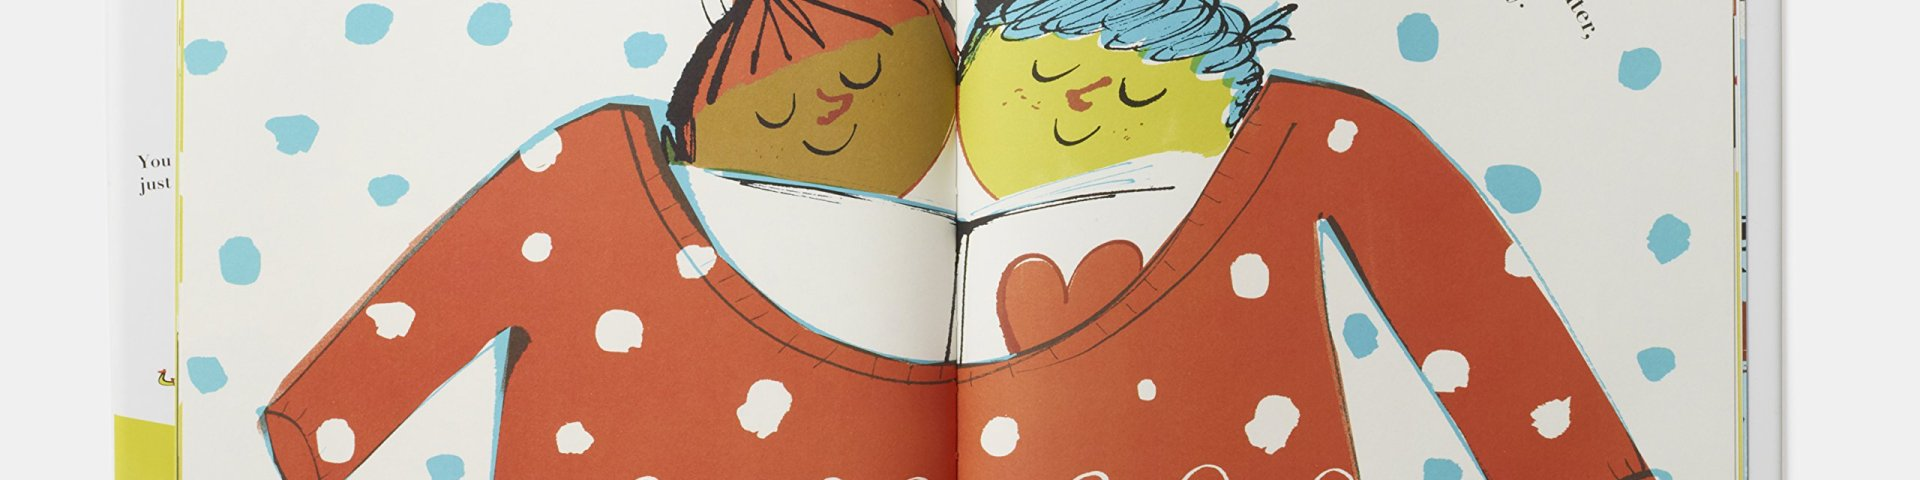 Hug this book spread and featured image